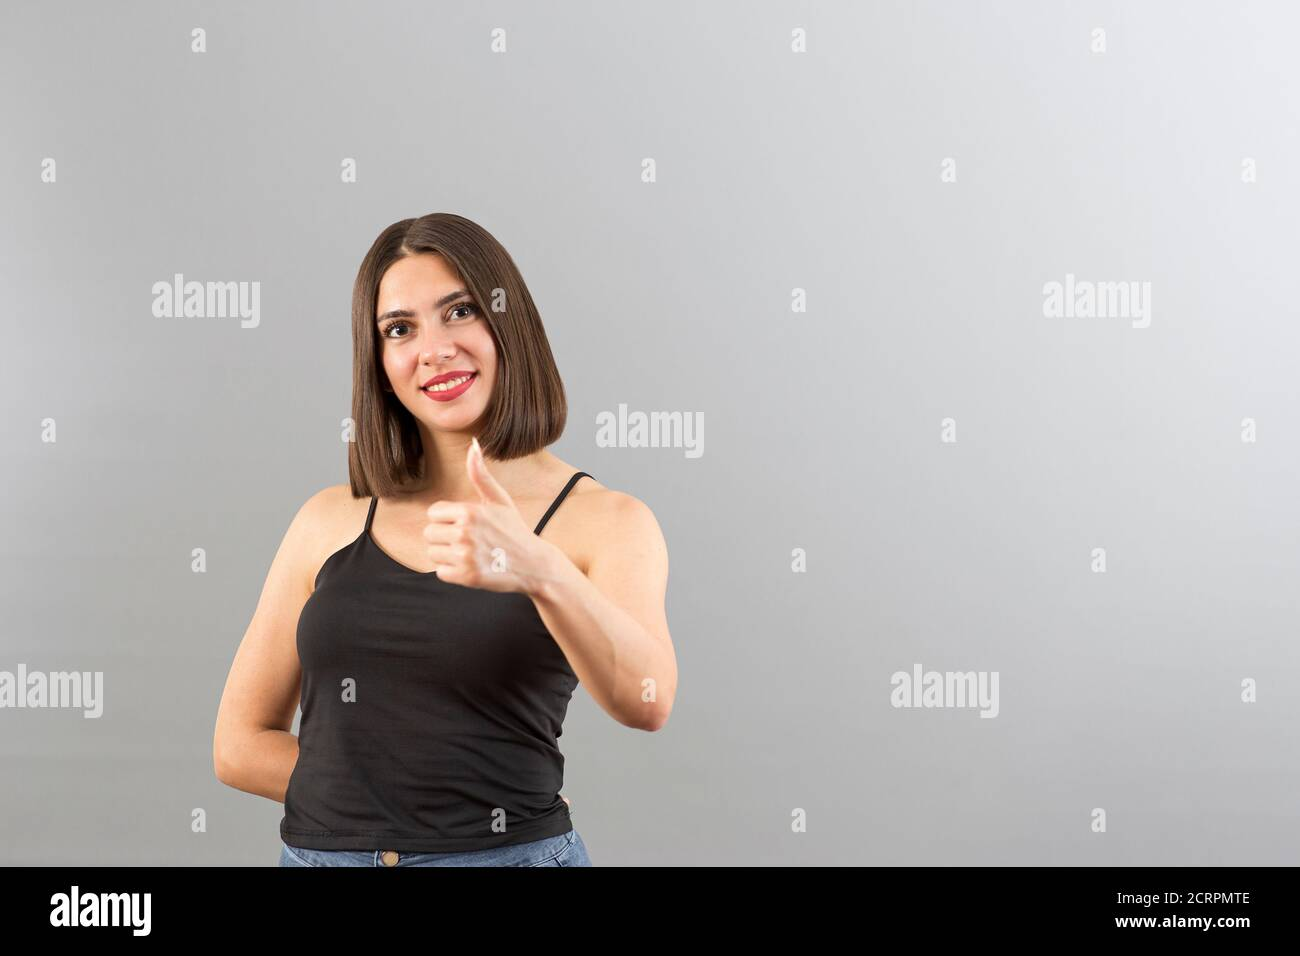 Beautiful Turkish woman is gesturing thumbs up in a studio, isolated shot with copy space Stock Photo